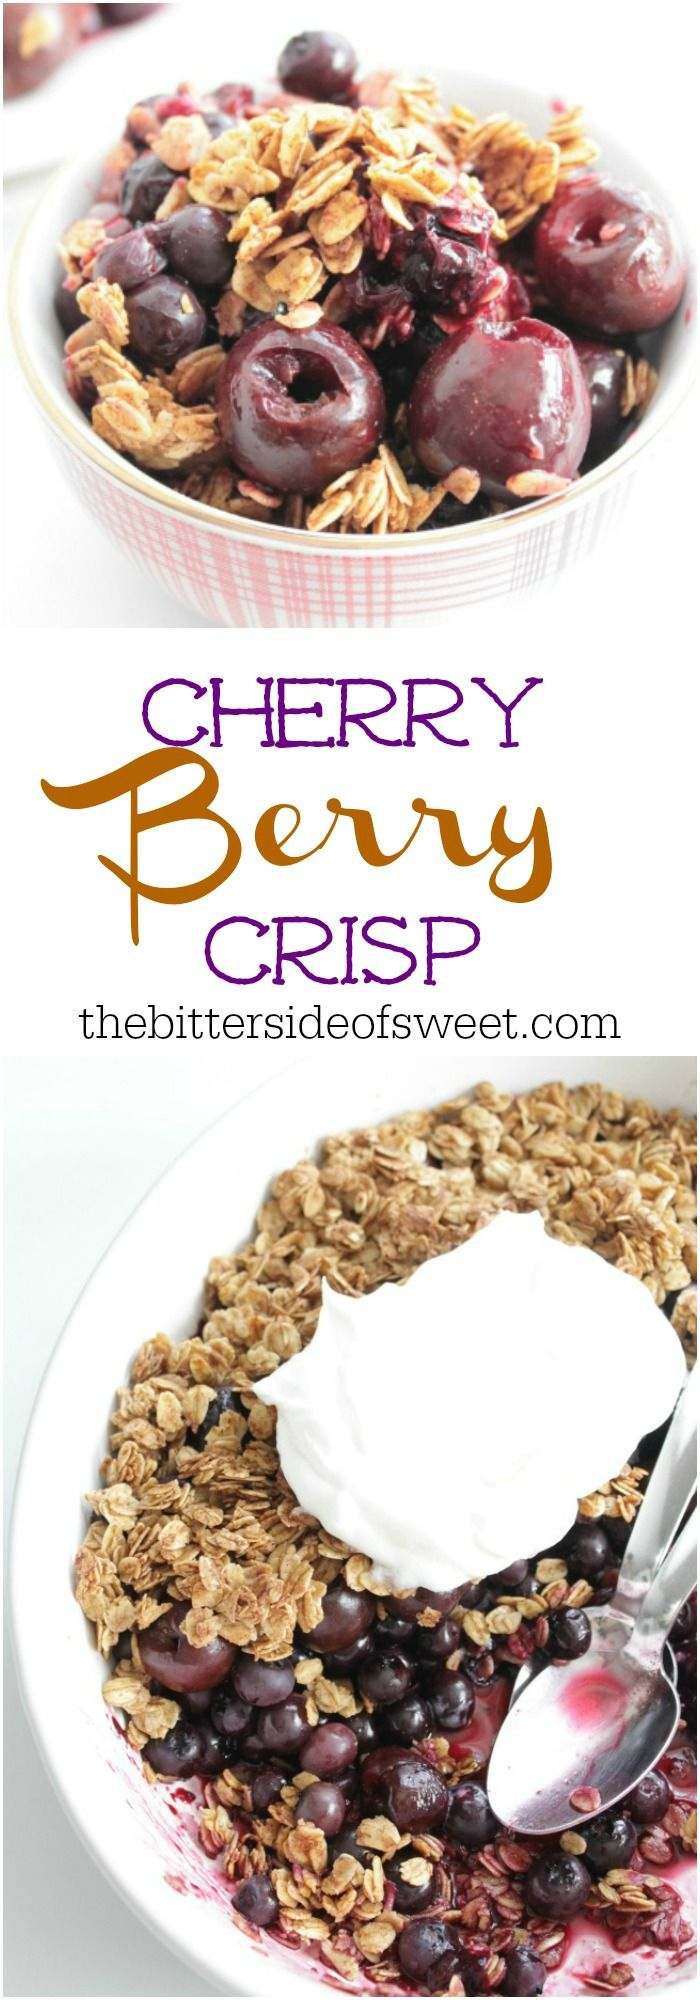 This Cherry Berry Crisp is a perfect way to use seasonal fruit to make a simple dessert! Take berries, honey and oatmeal and you get perfection!